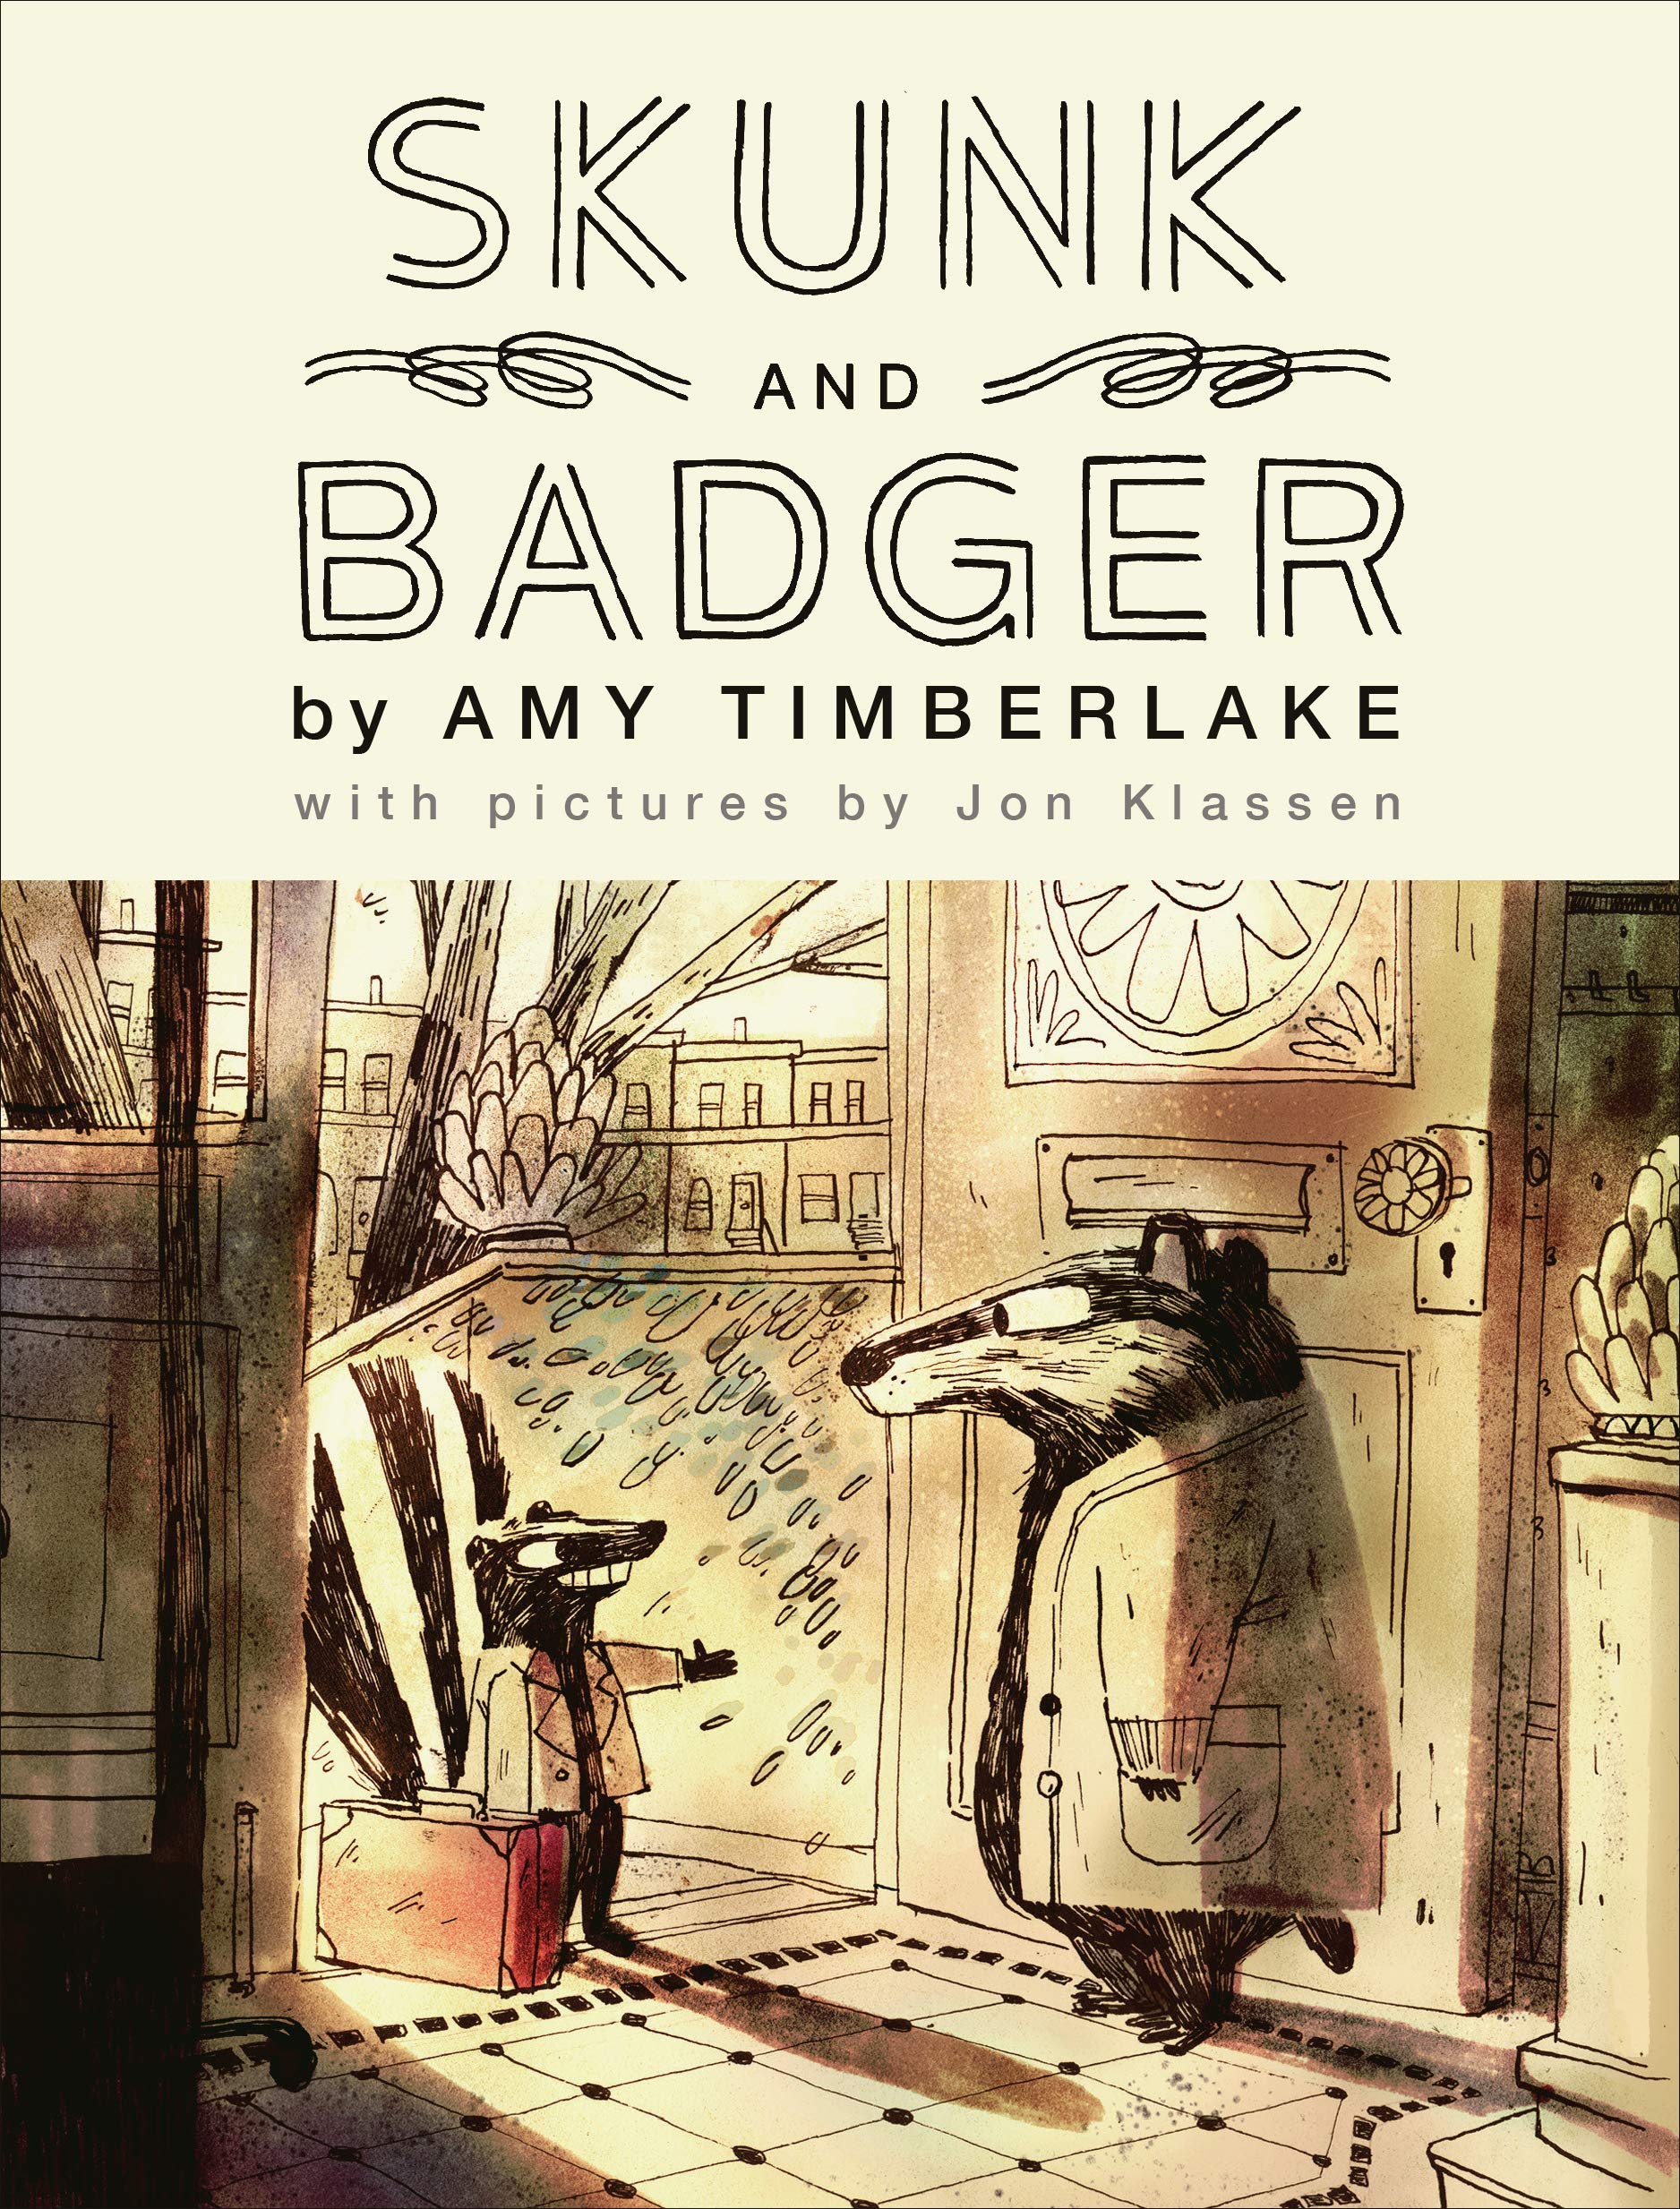 Skunk and Badger (Skunk and Badger 1): Timberlake, Amy, Klassen, Jon:  9781643750057: Amazon.com: Books